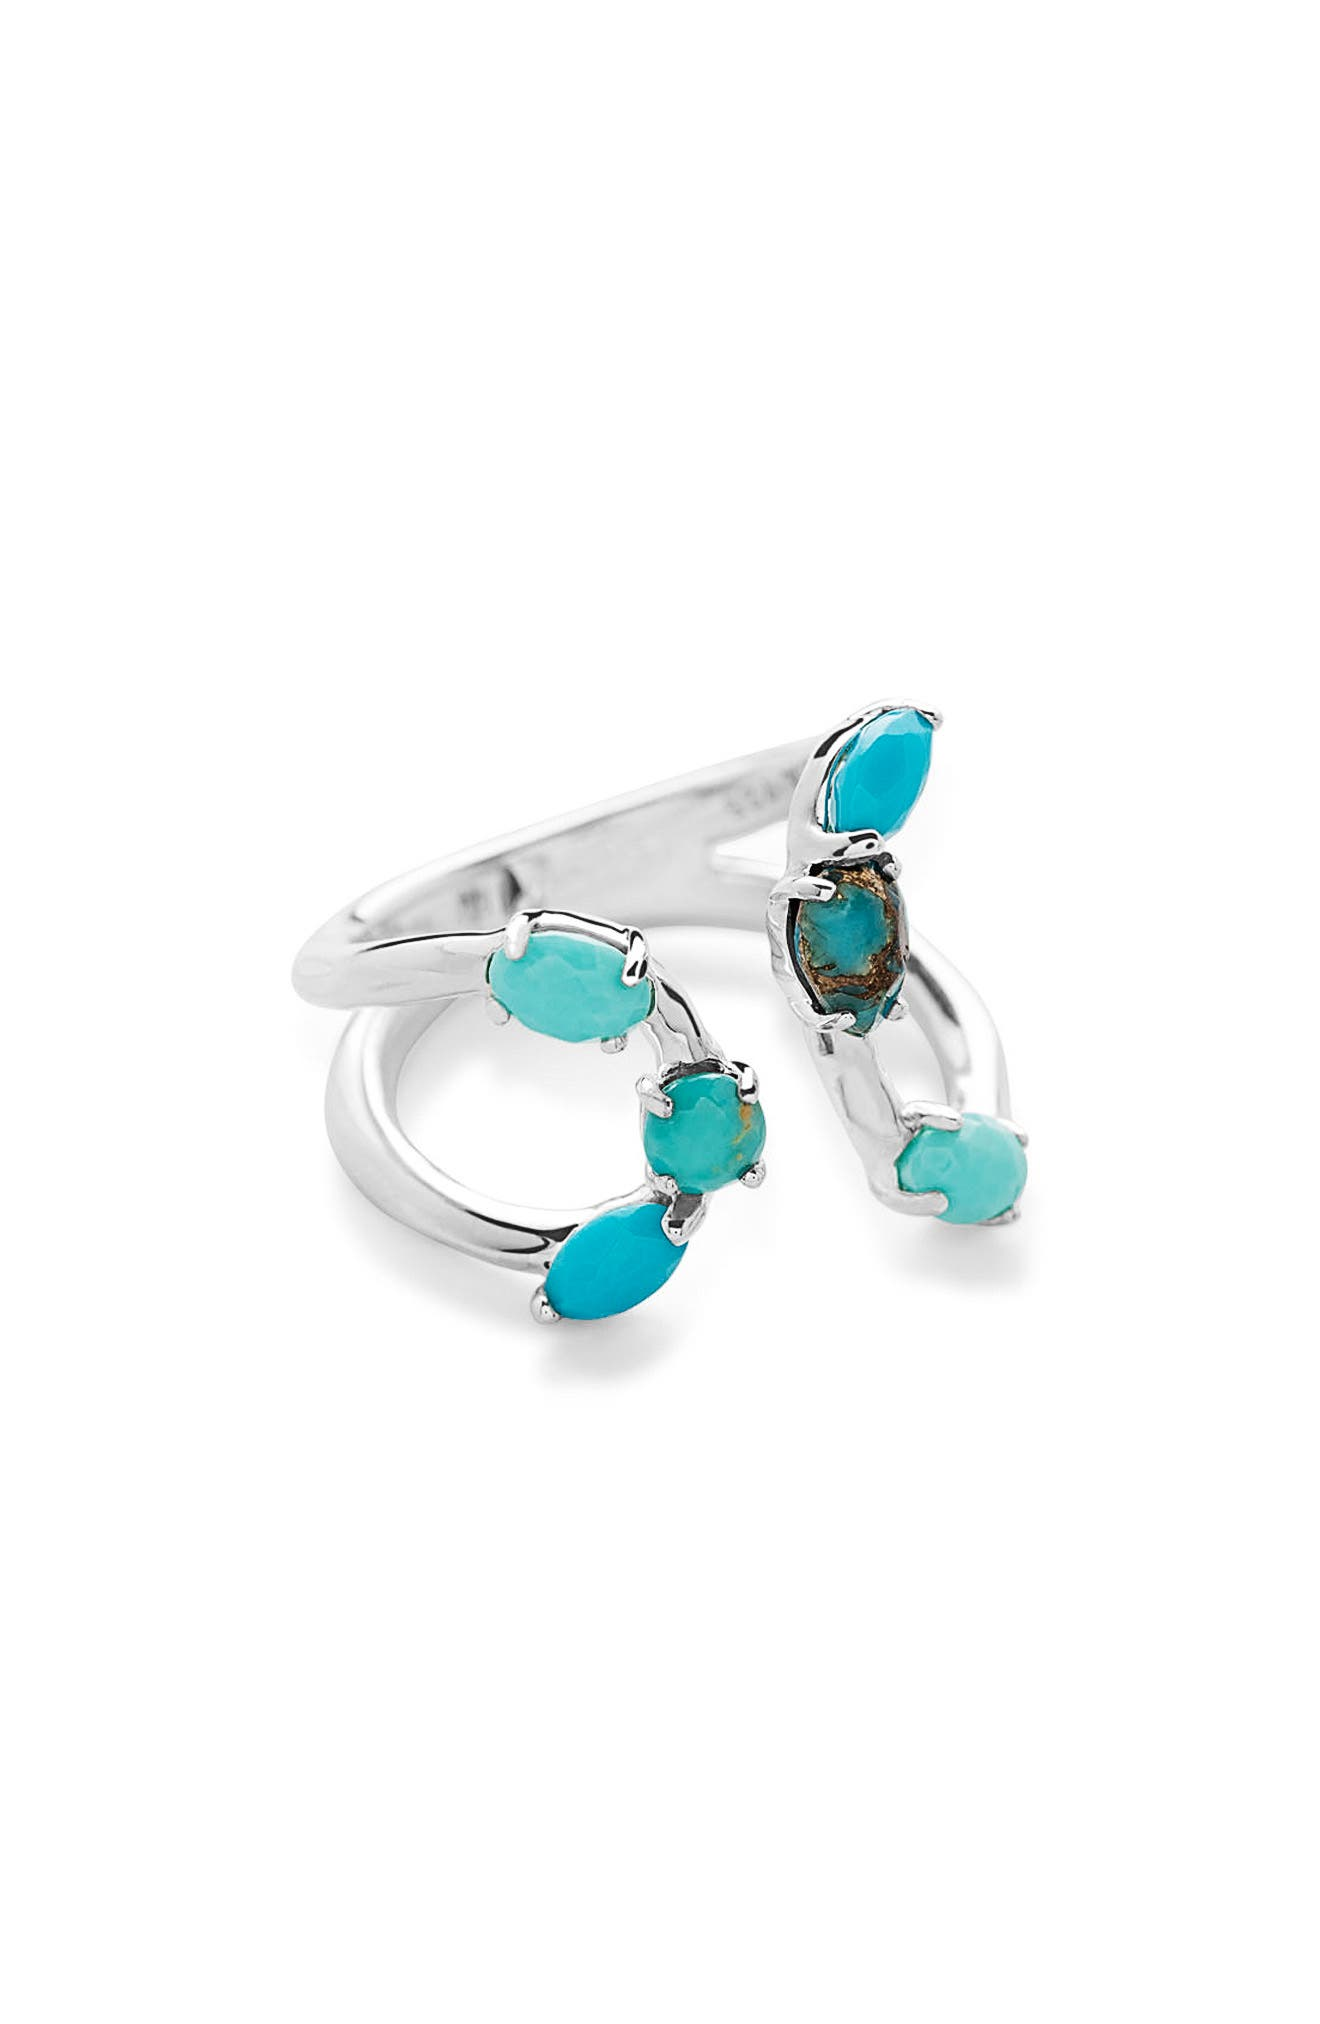 Rock Candy Bypass Ring,                             Main thumbnail 1, color,                             Turquoise